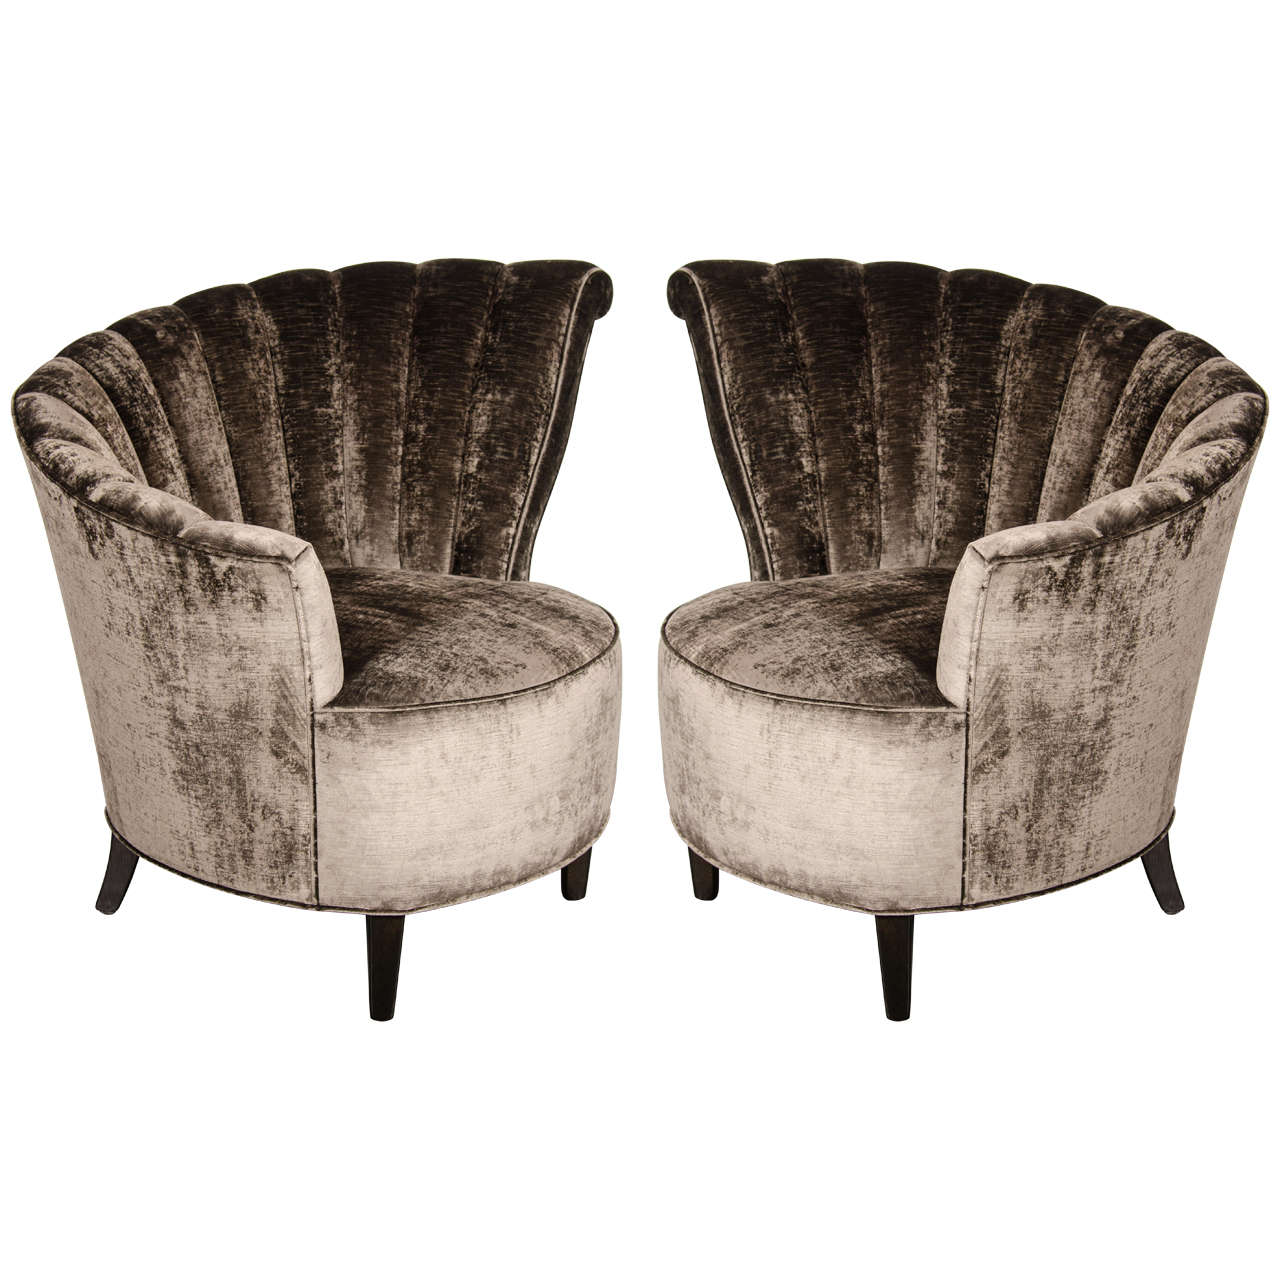 Exceptional Glamorous Pair Of 1940u0027s Asymmetrical Fan Back Chairs In Smoked Velvet 1